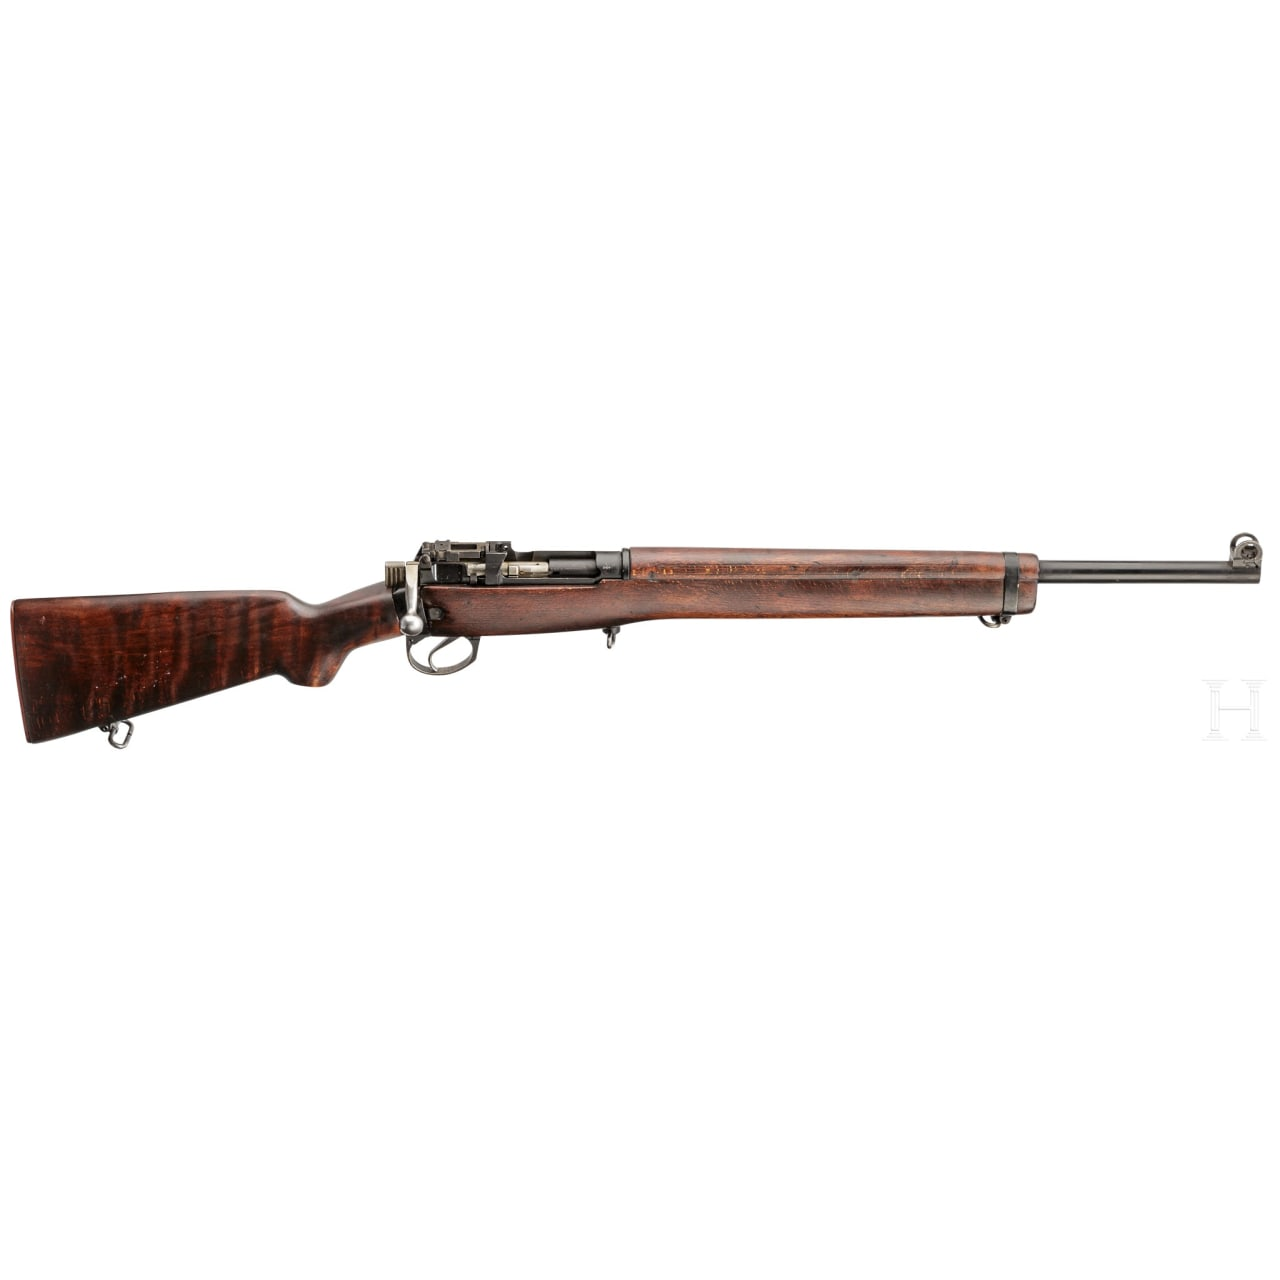 An Enfield No. 8 Mark I, rifle for training, .22 l.r.